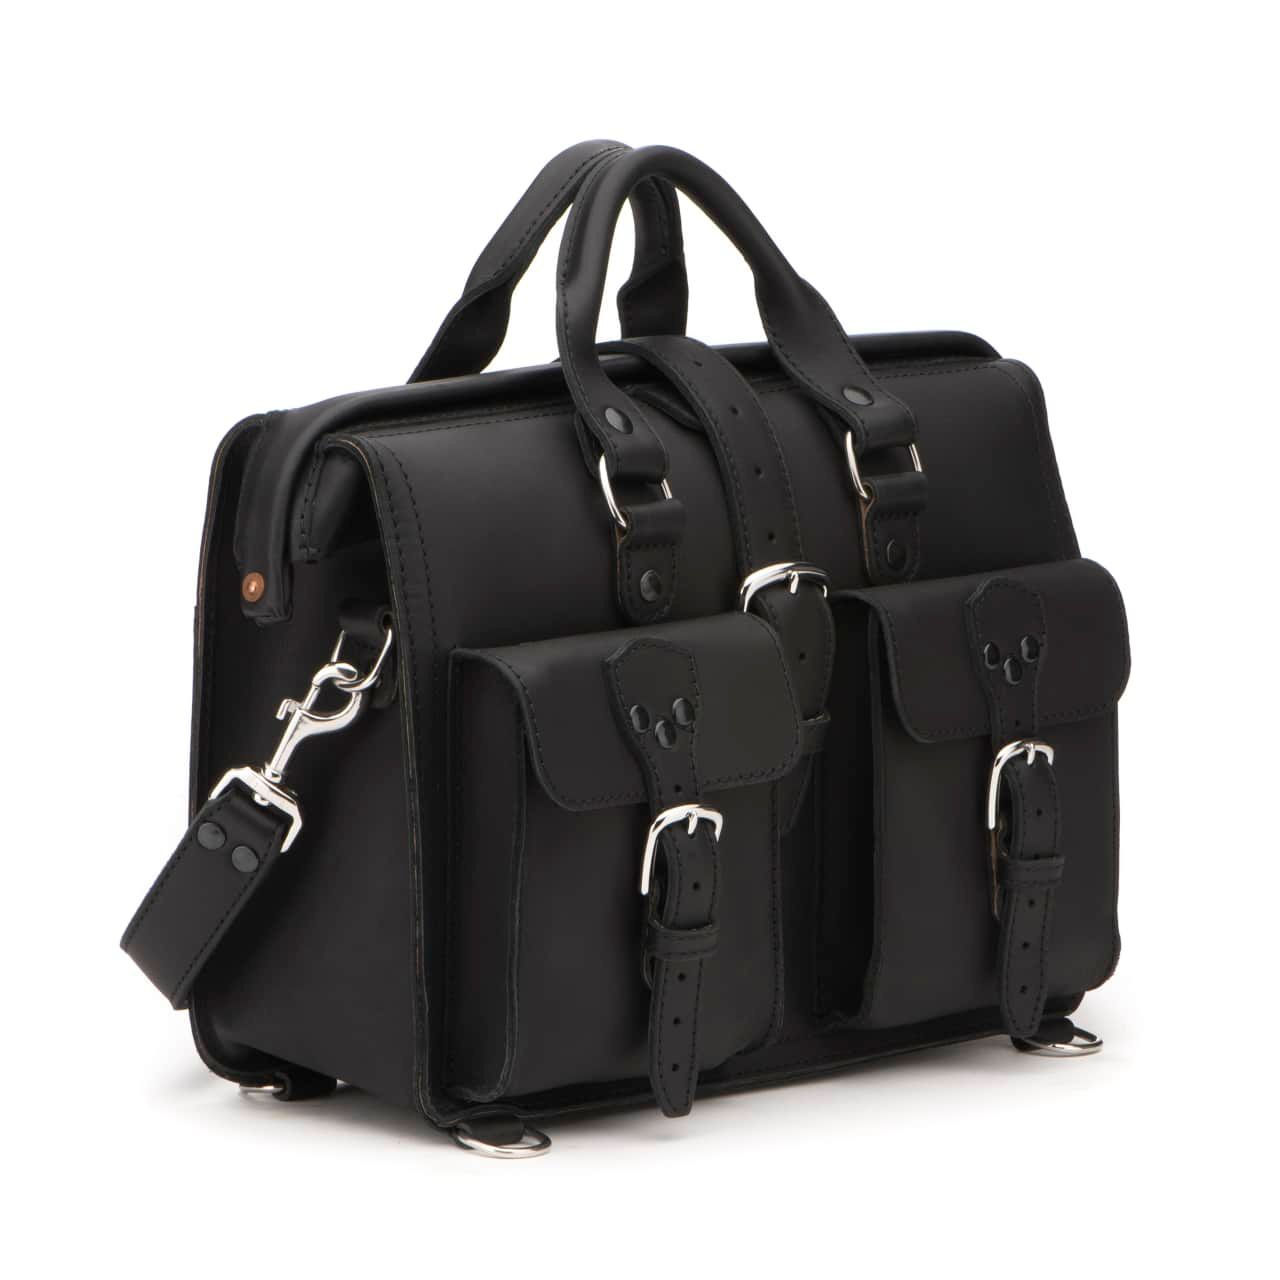 Leather Flight Bag in color Black shown from the Front at an Angle